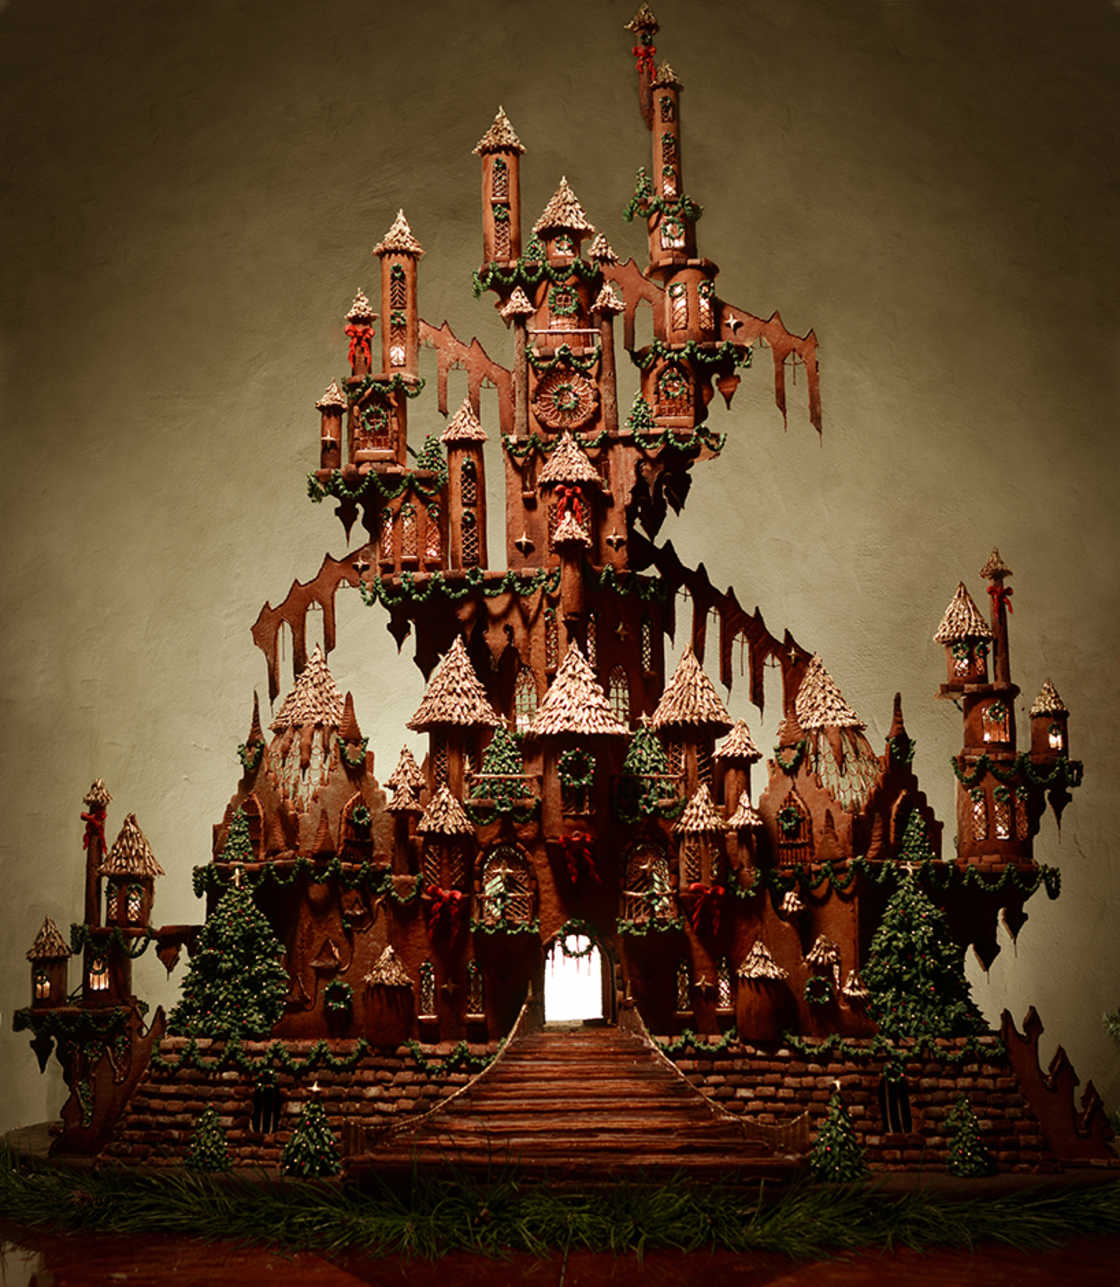 She creates an incredible 1,50-meter-tall gingerbread castle (9 pics)